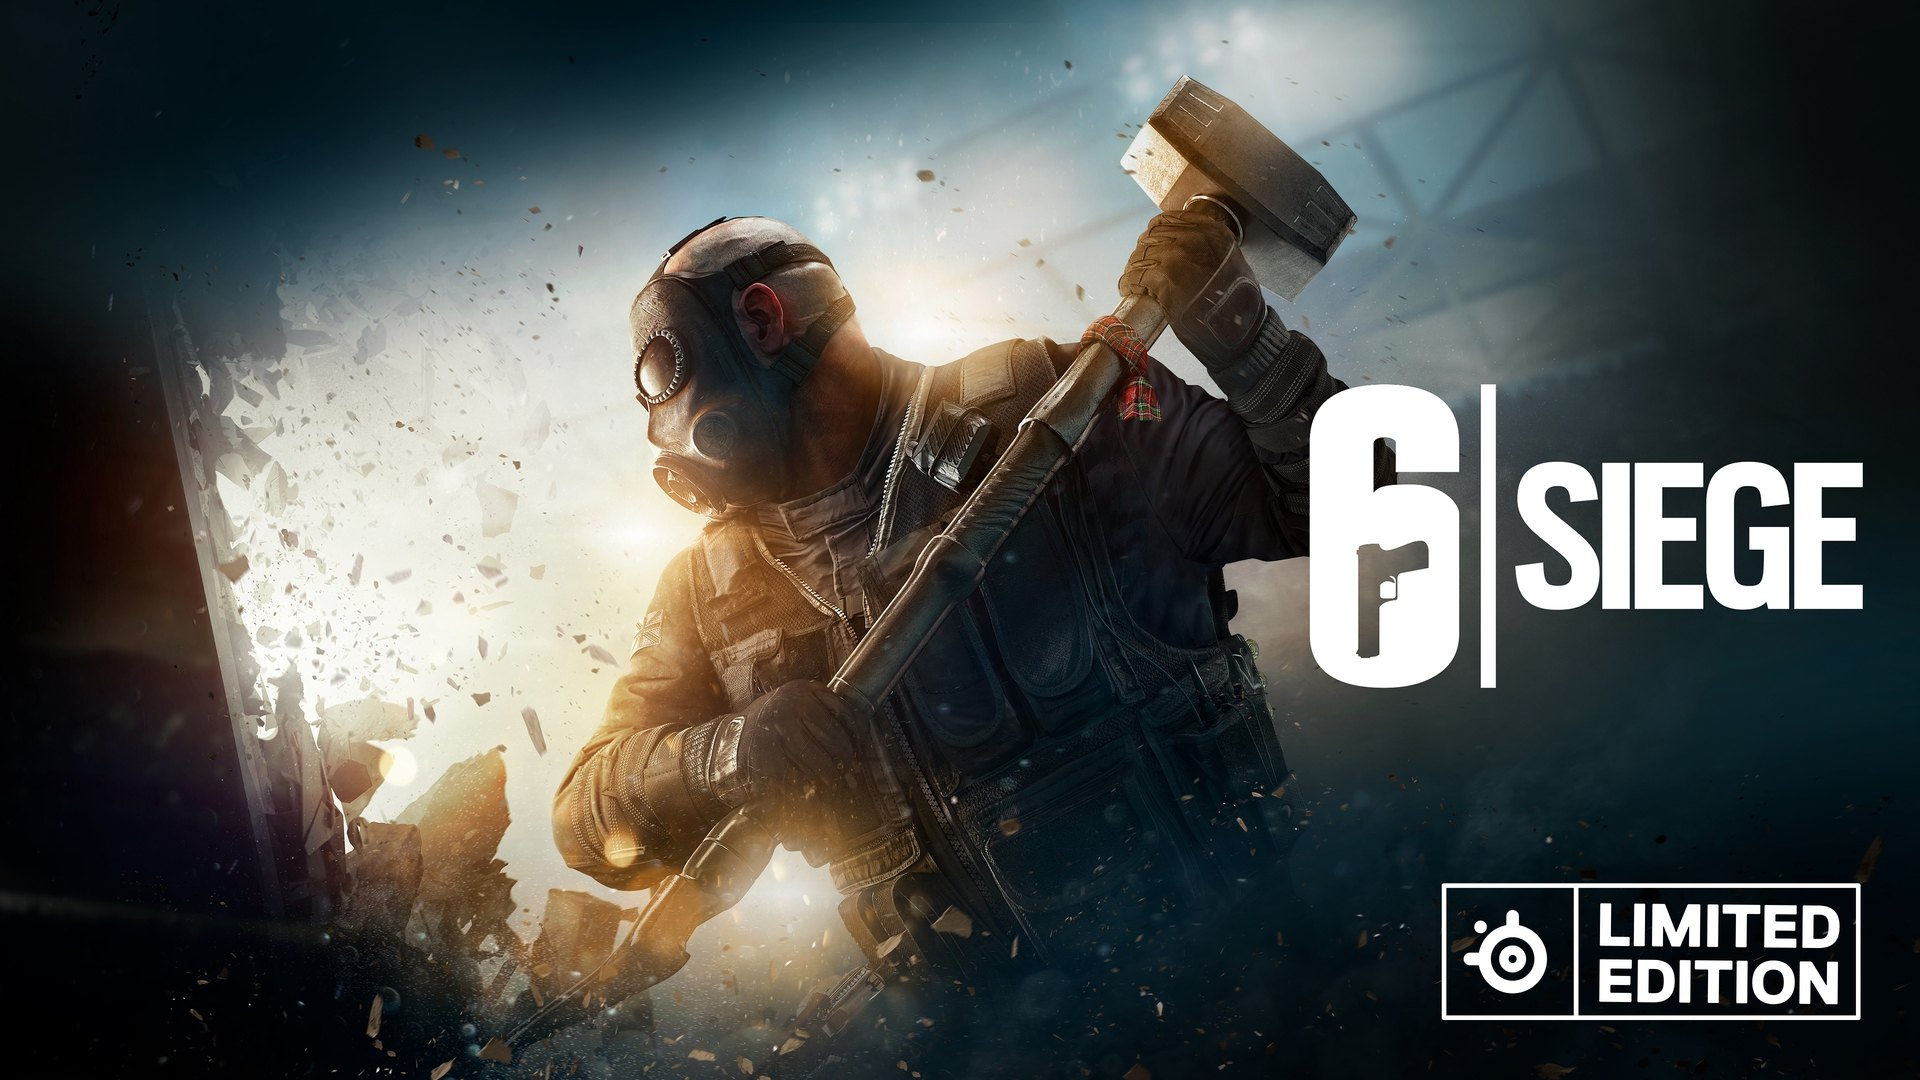 Rainbow Six Siege image hero character wielding weapon